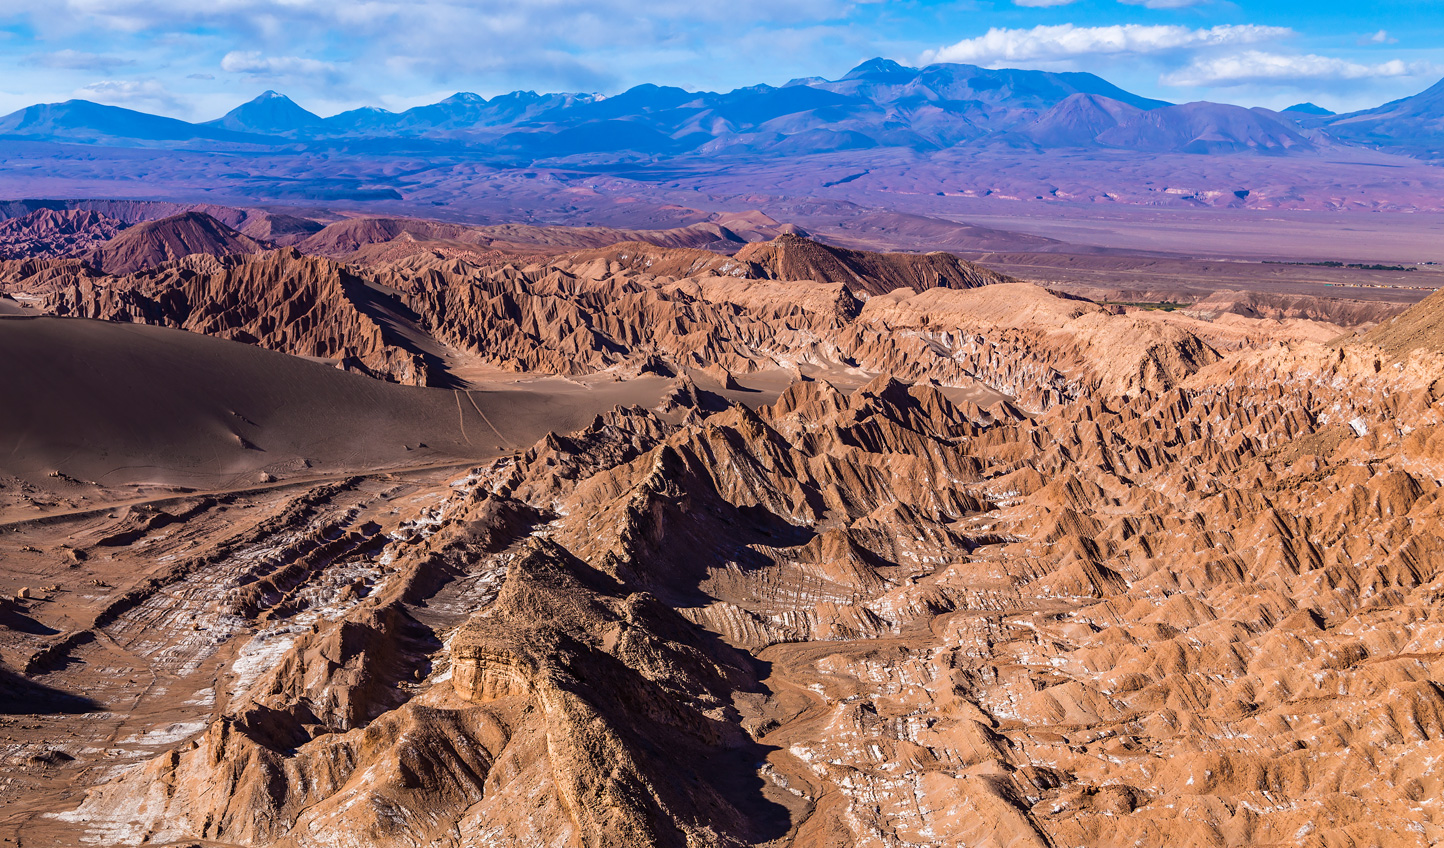 Valle de la Luna is so called because the rock formations make it look like the surface of the moon